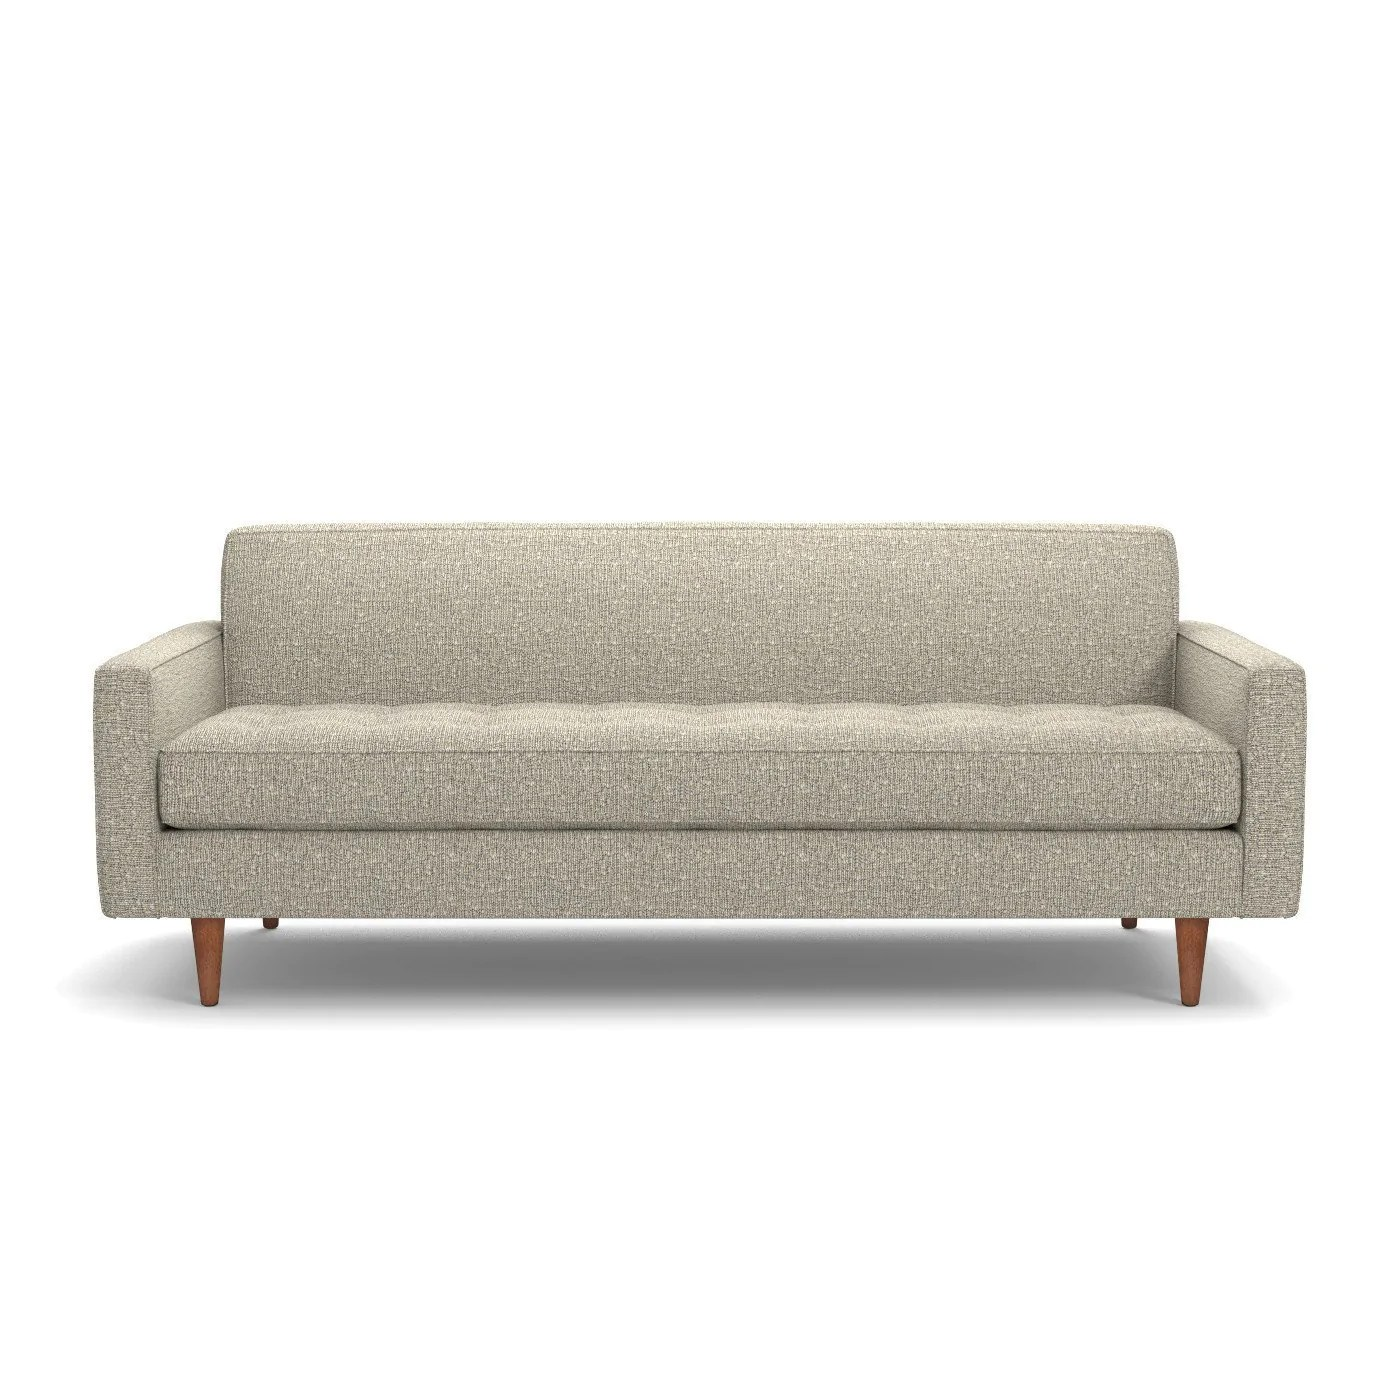 Sofa Open Box Monroe Sofa In Straw Clearance